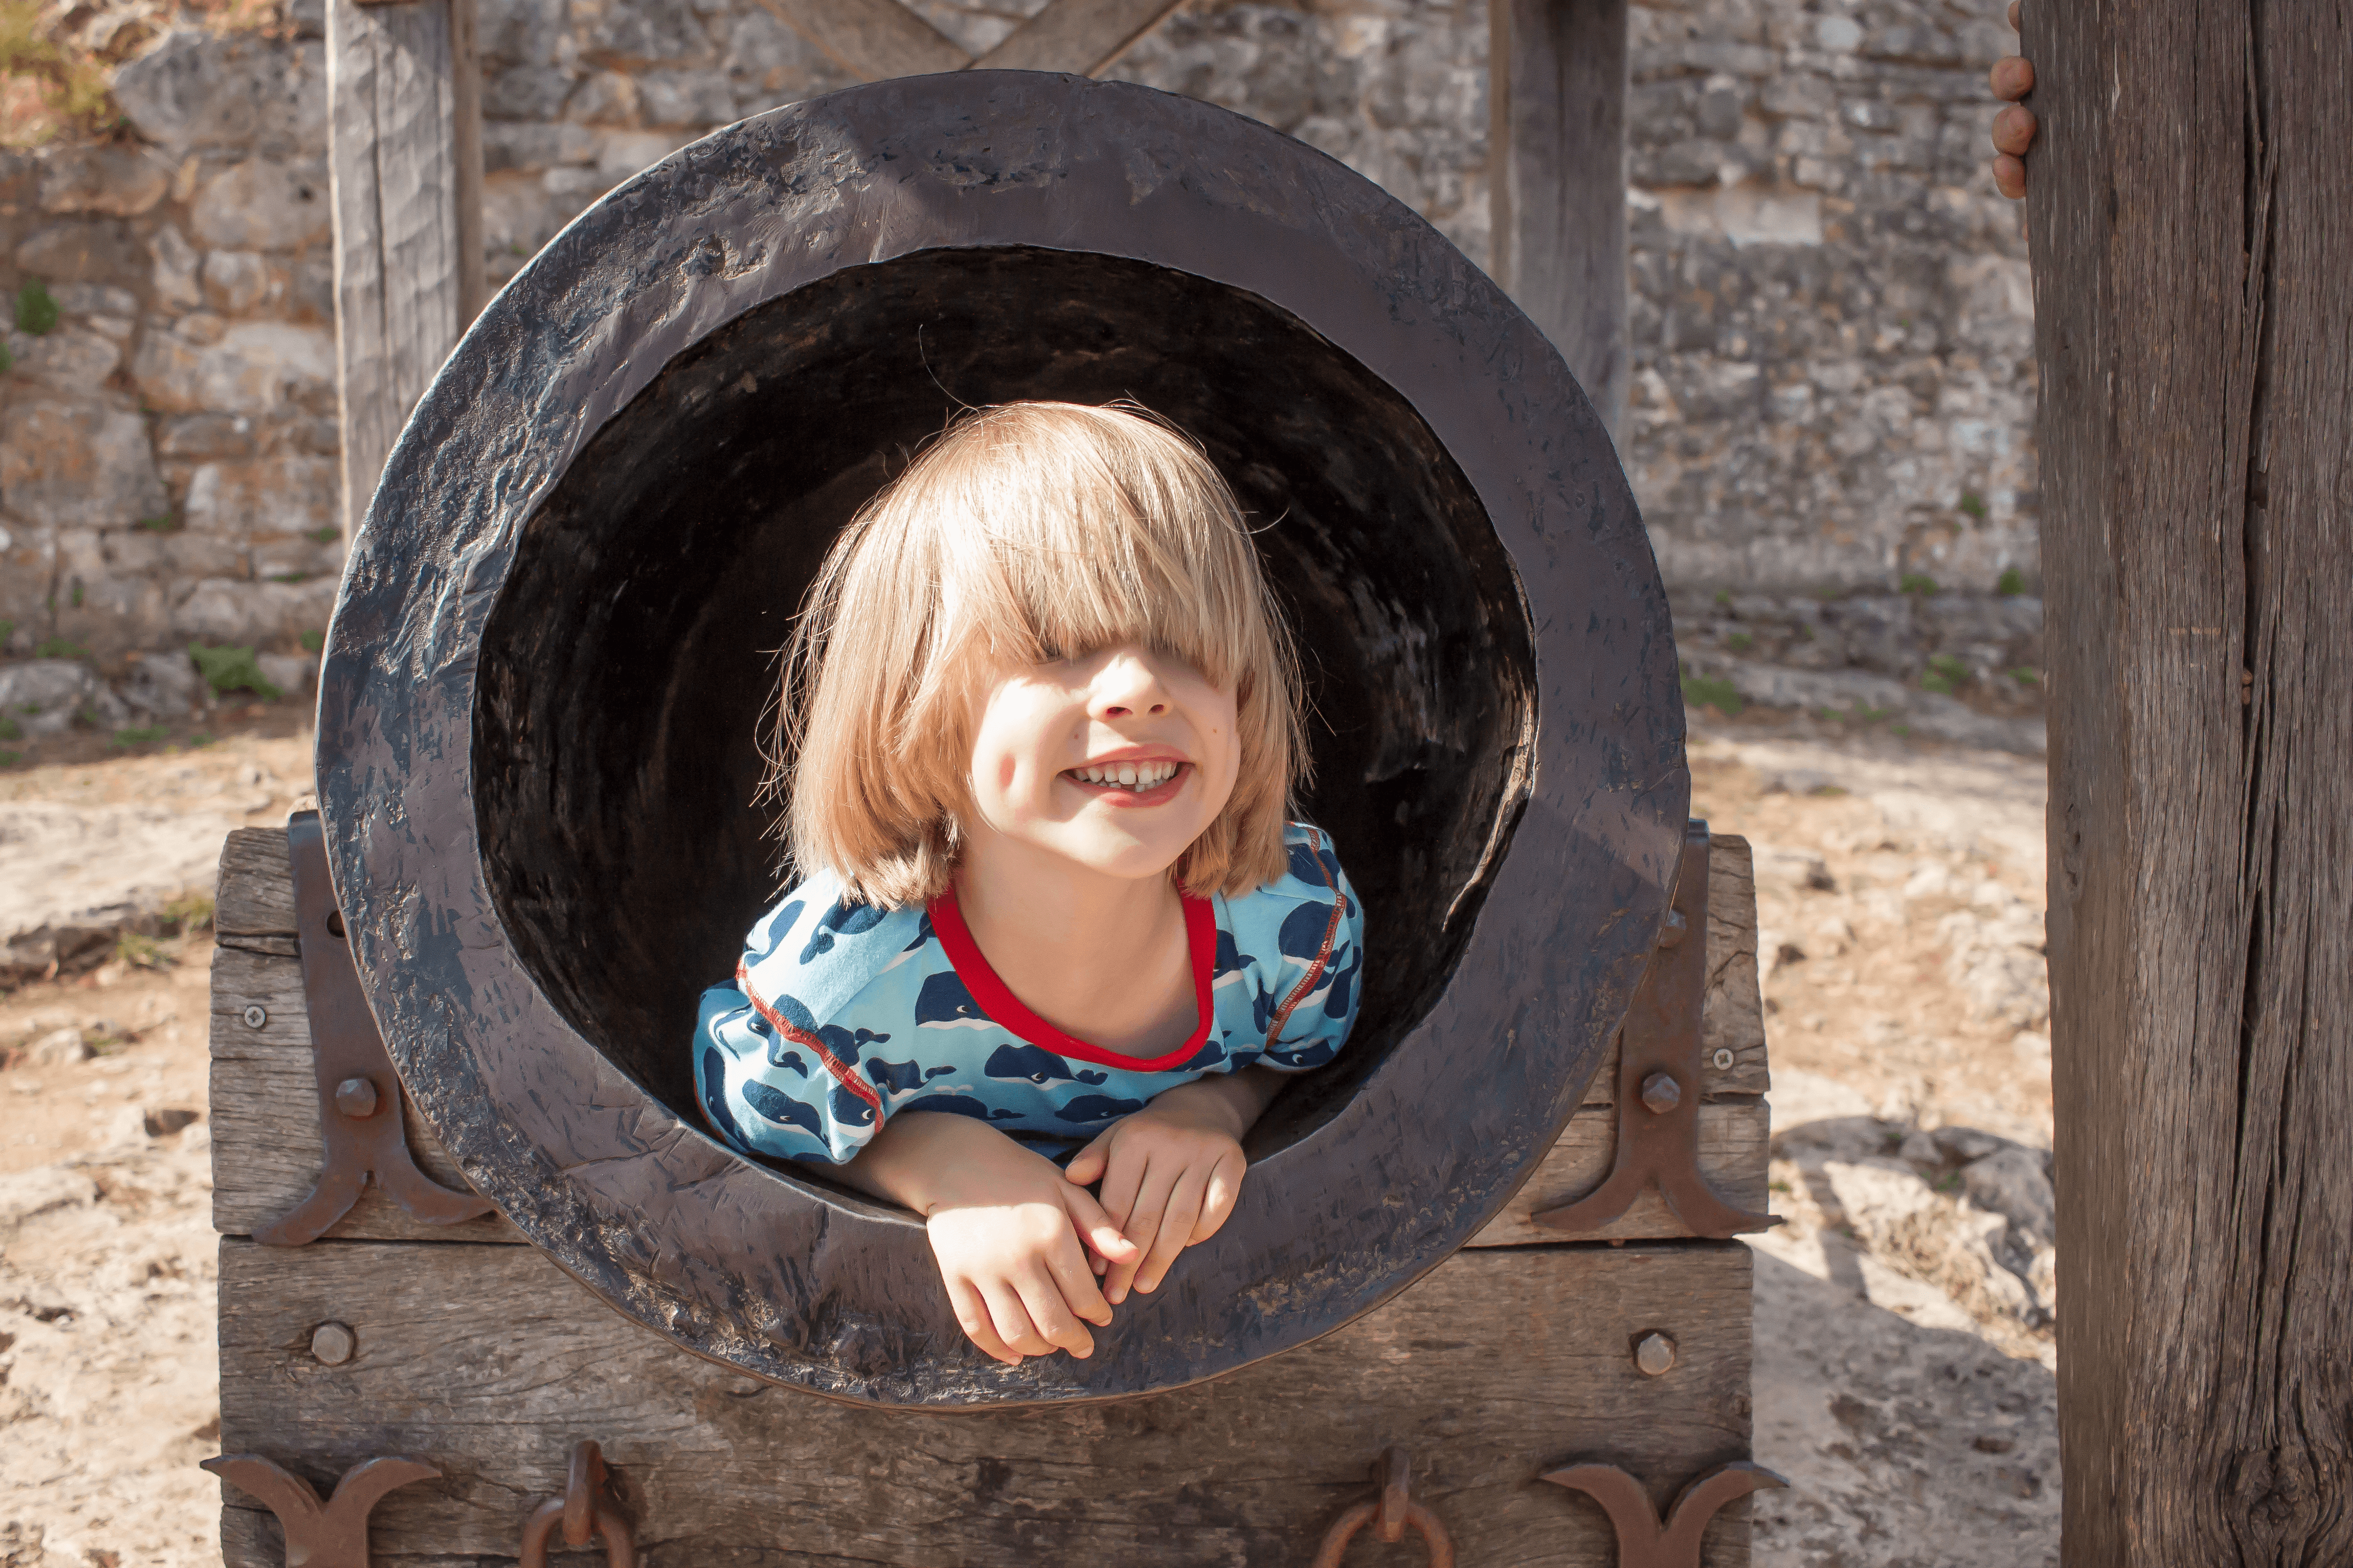 Toby inside a canon at Chateau de Castelnaud